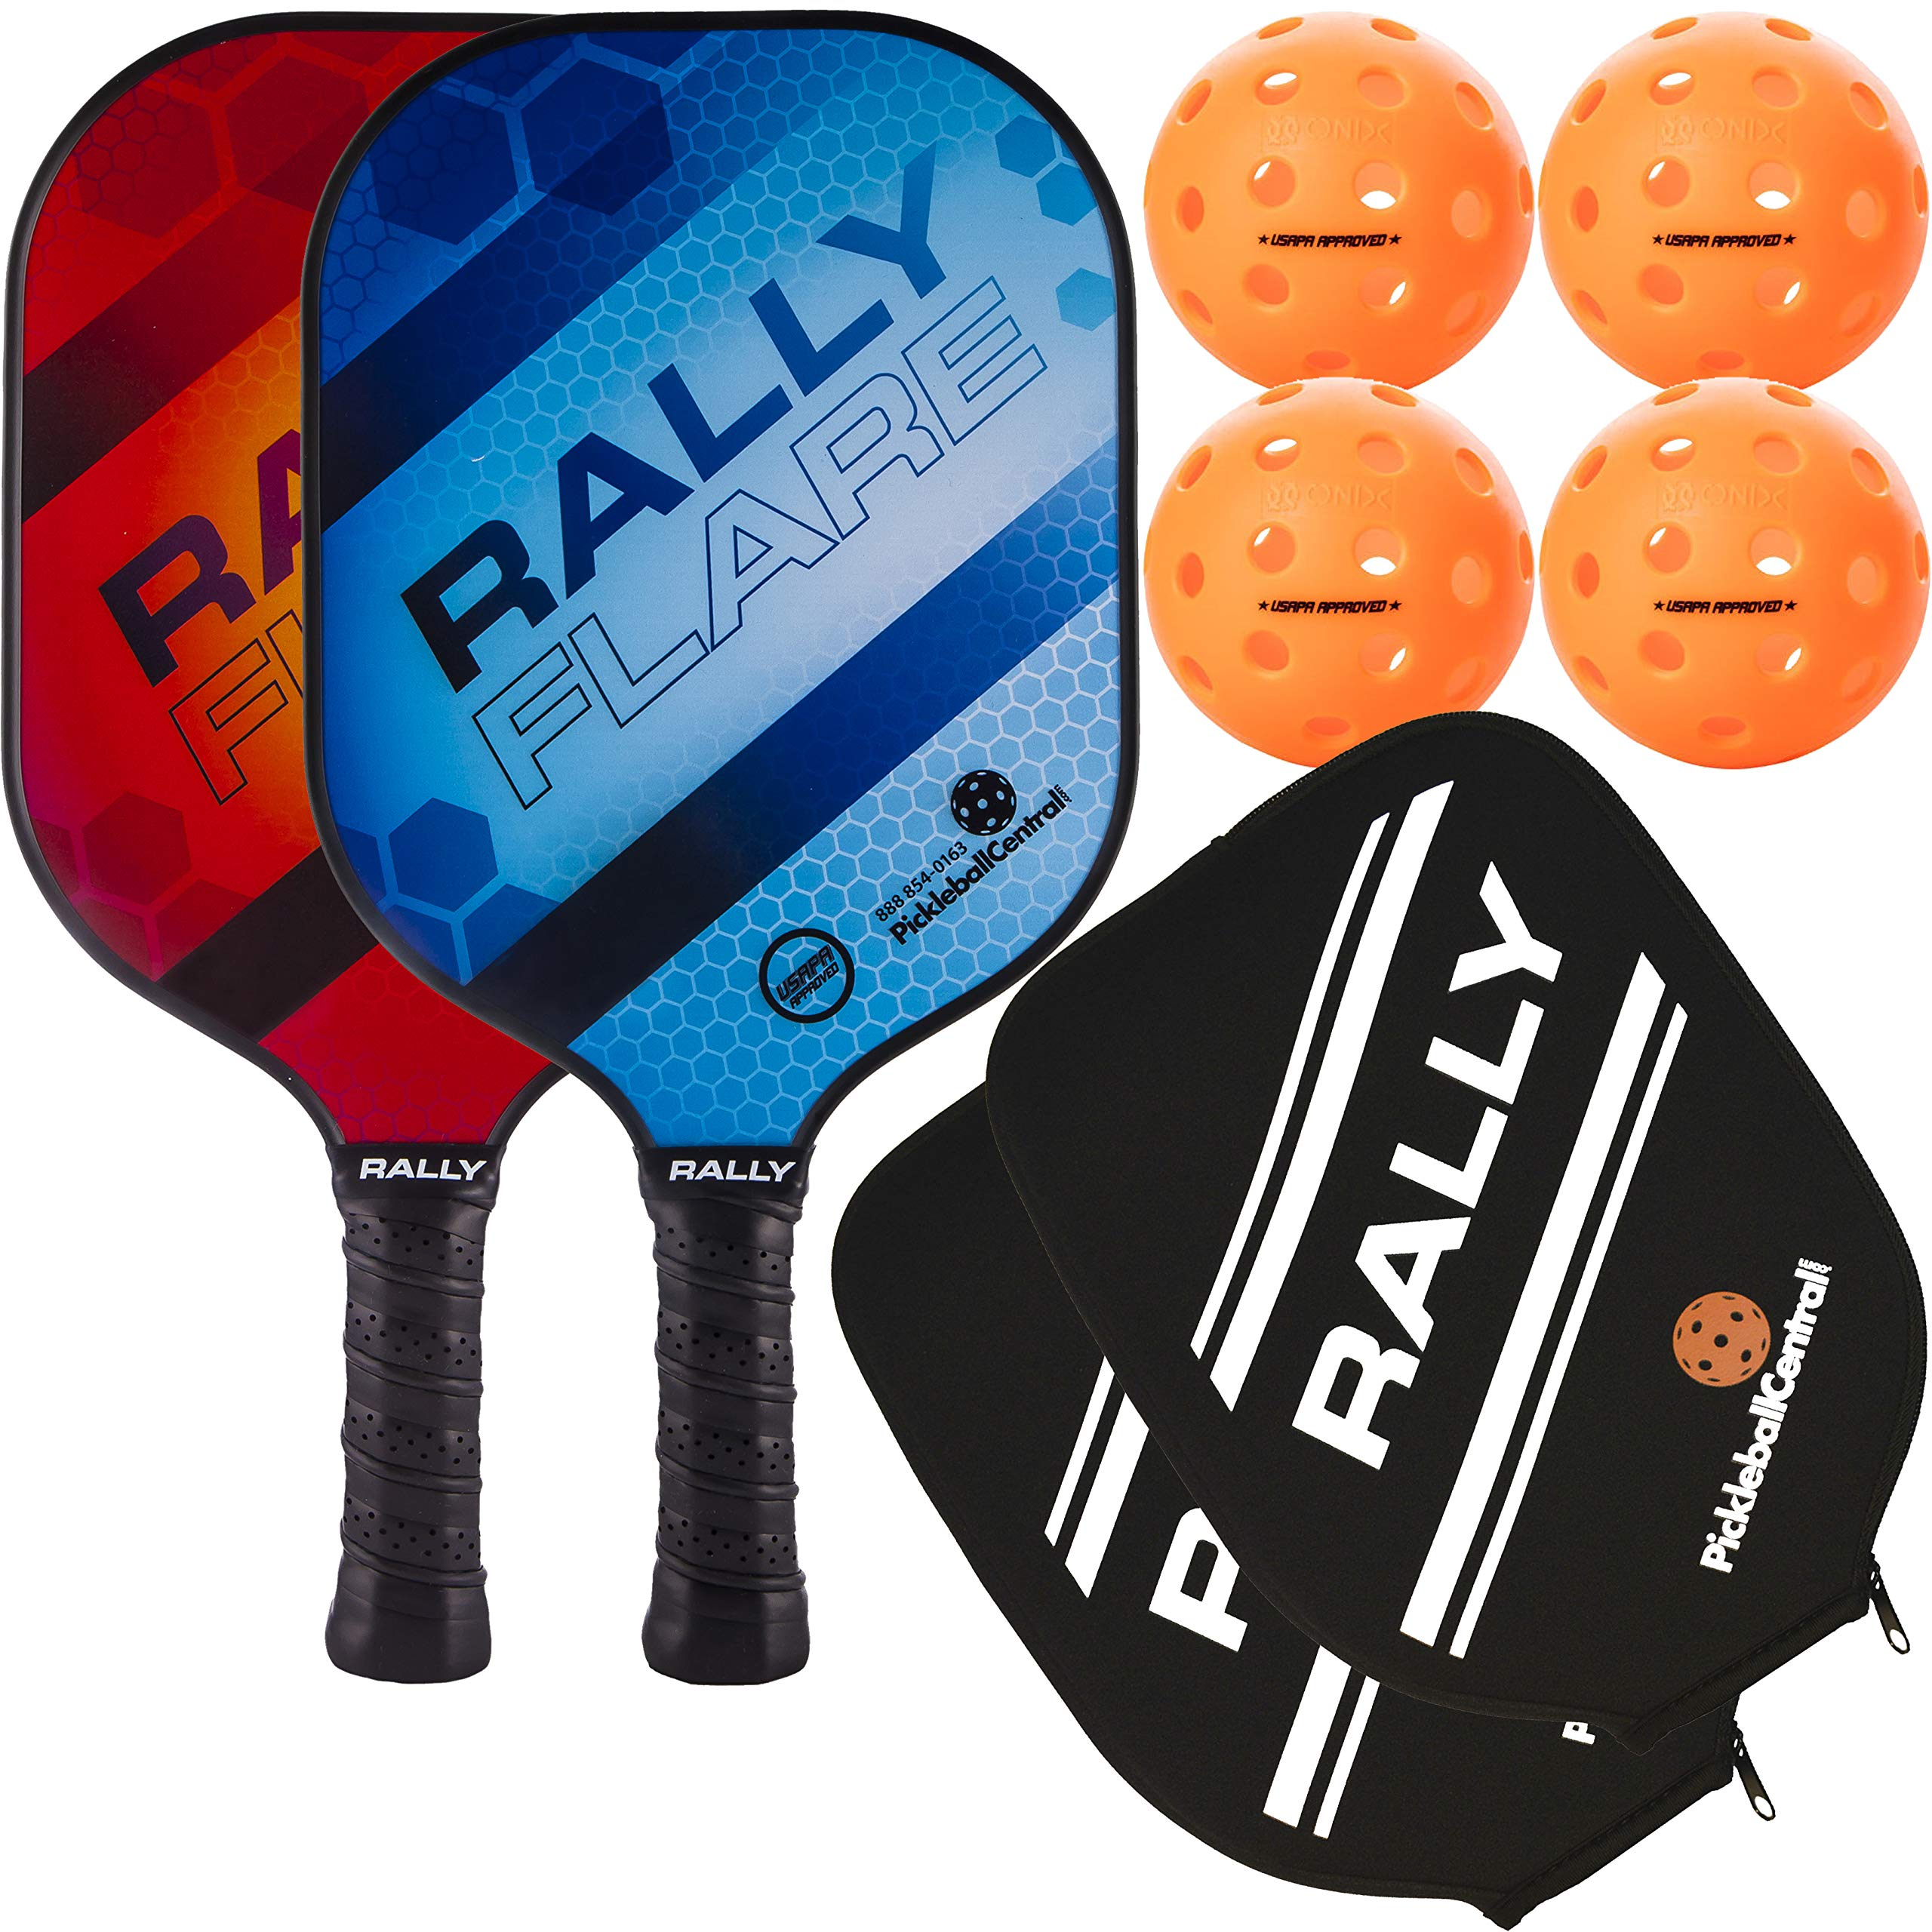 Rally Flare Graphite Pickleball Paddle | Polymer Honeycomb Core, Graphite Hybrid Composite Face | Lightweight (2-Pack Blue/Red with Orange Balls) by PickleballCentral